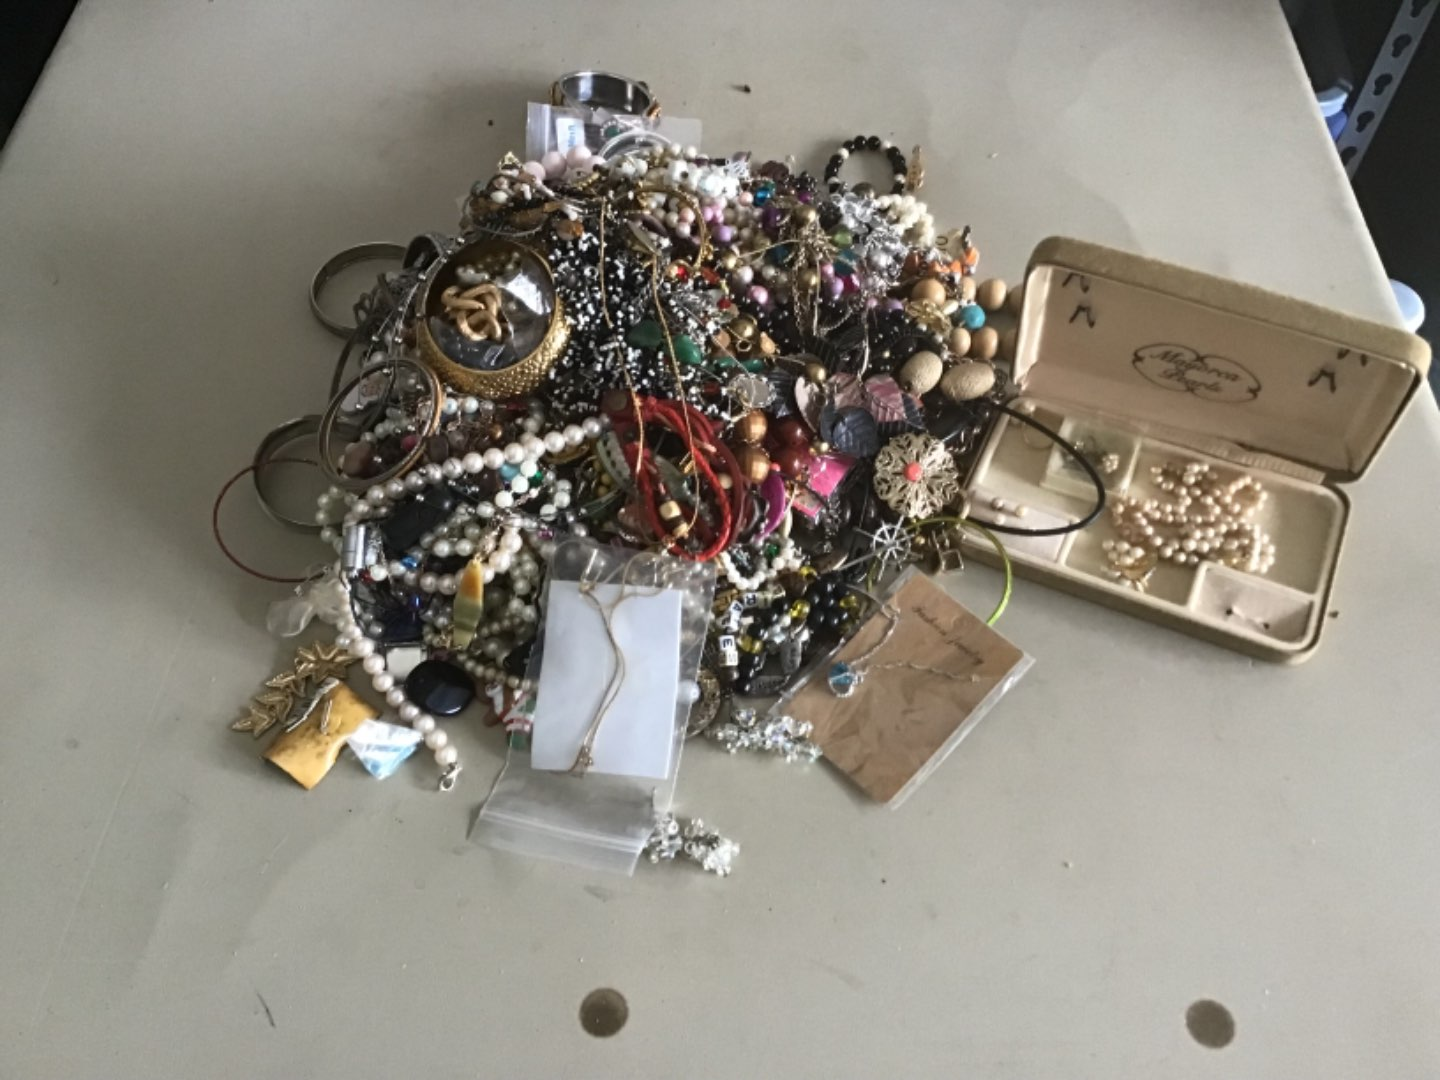 Lot # 86  About 15 Lbs of Costume Jewelry! It Needs To Be Sorted & Gone Through. See Below